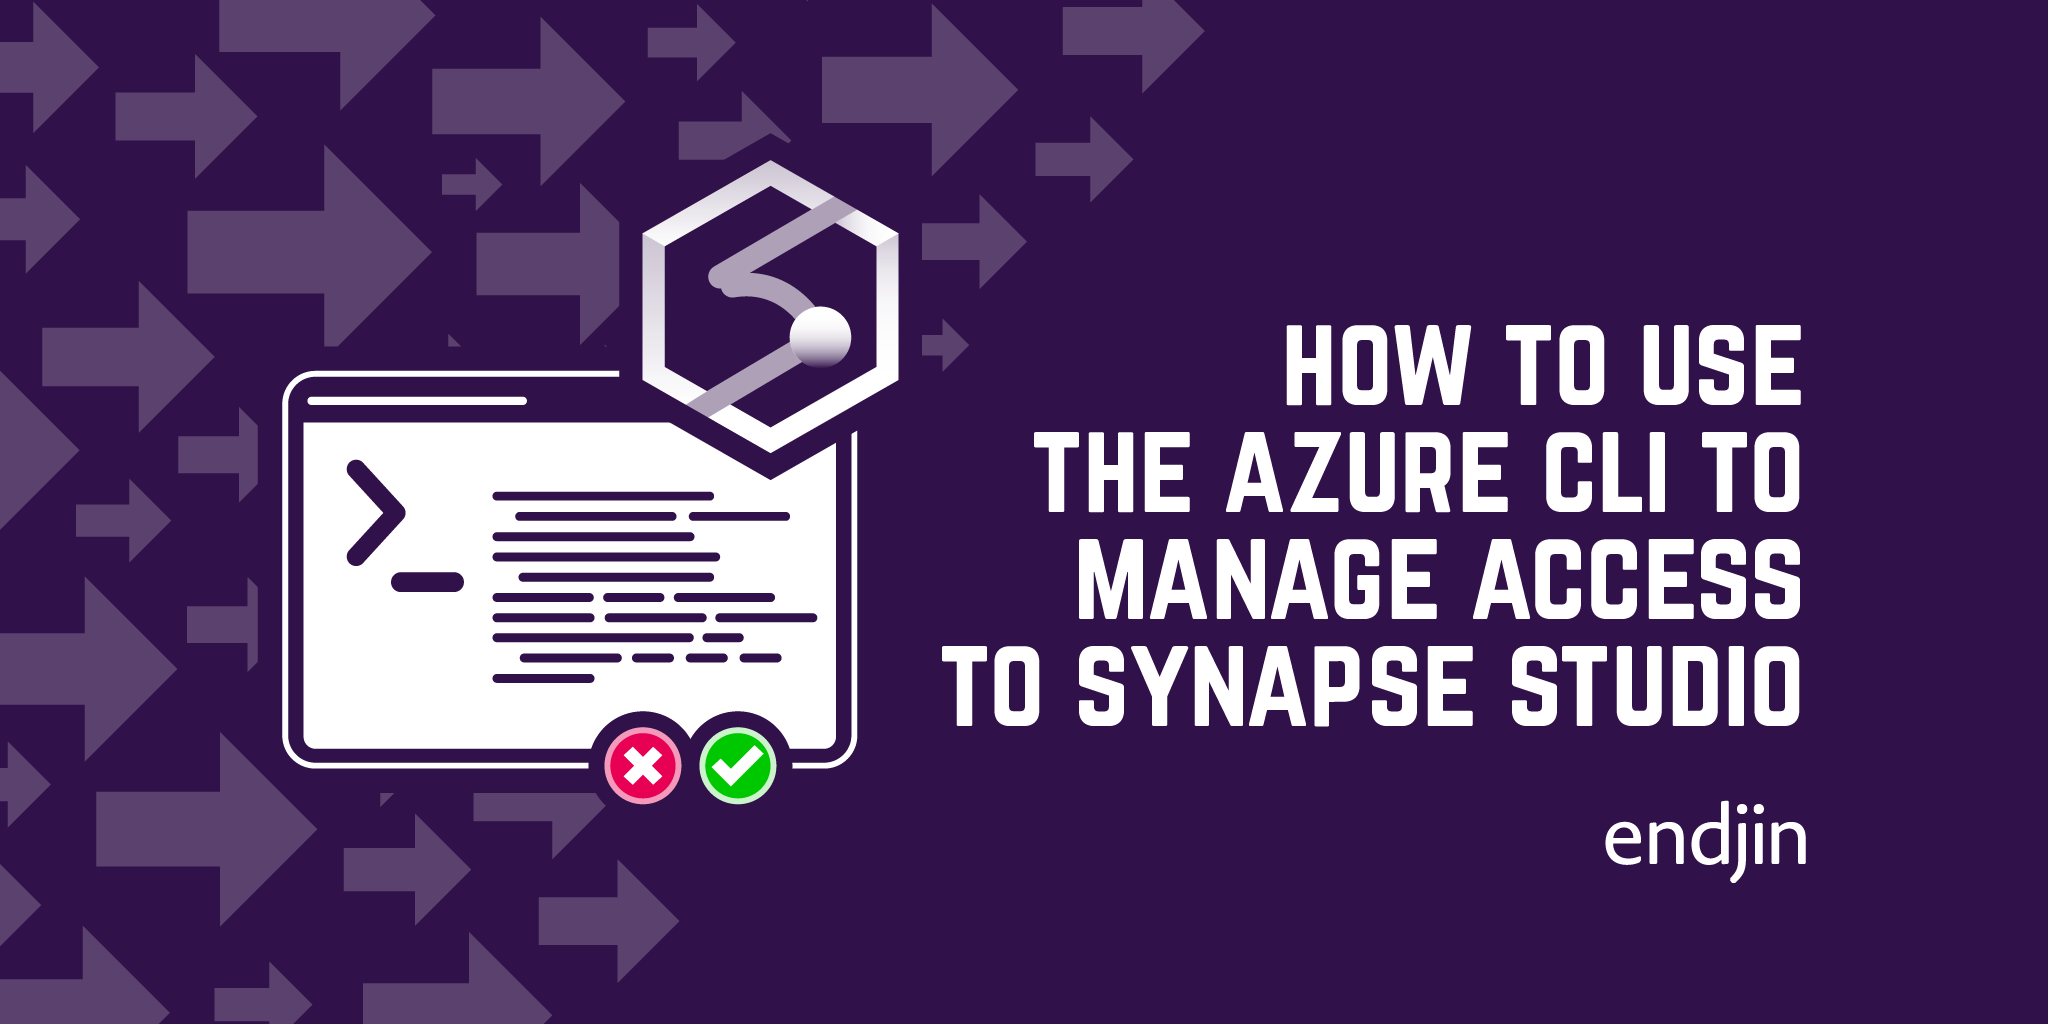 How to use the Azure CLI to manage access to Synapse Studio